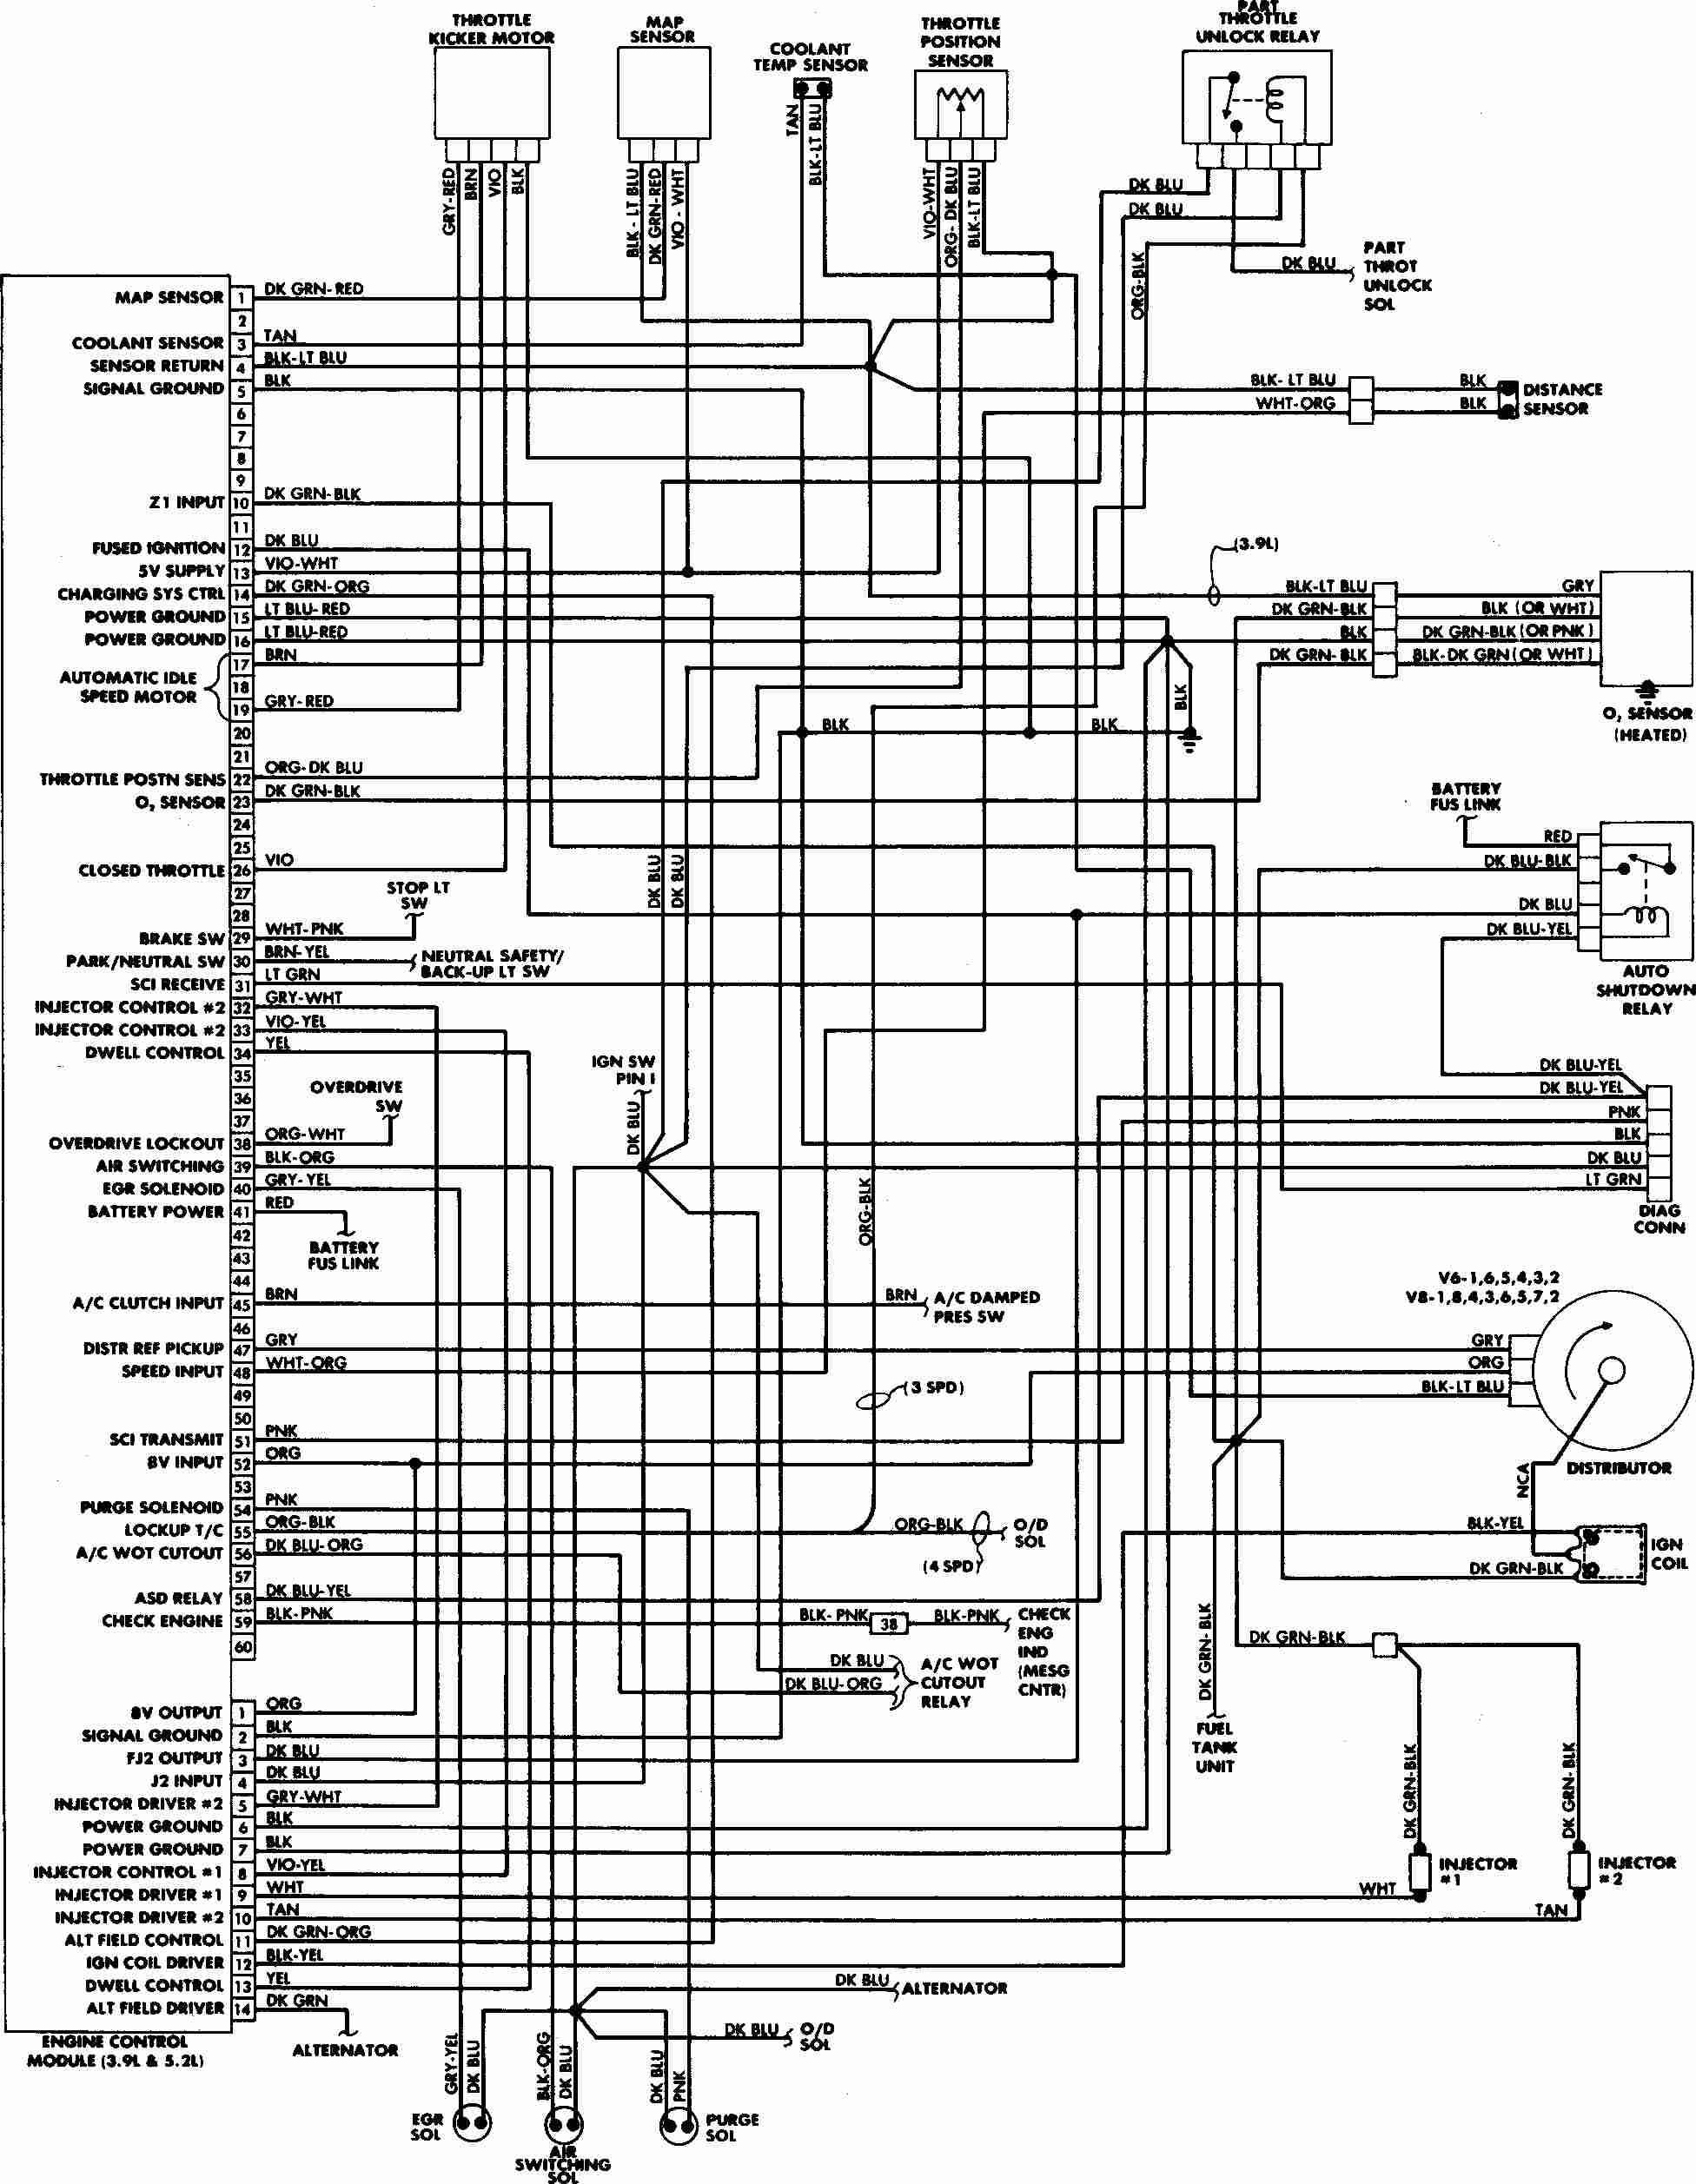 Chevy Silverado Fuel Pump Wiring Diagram